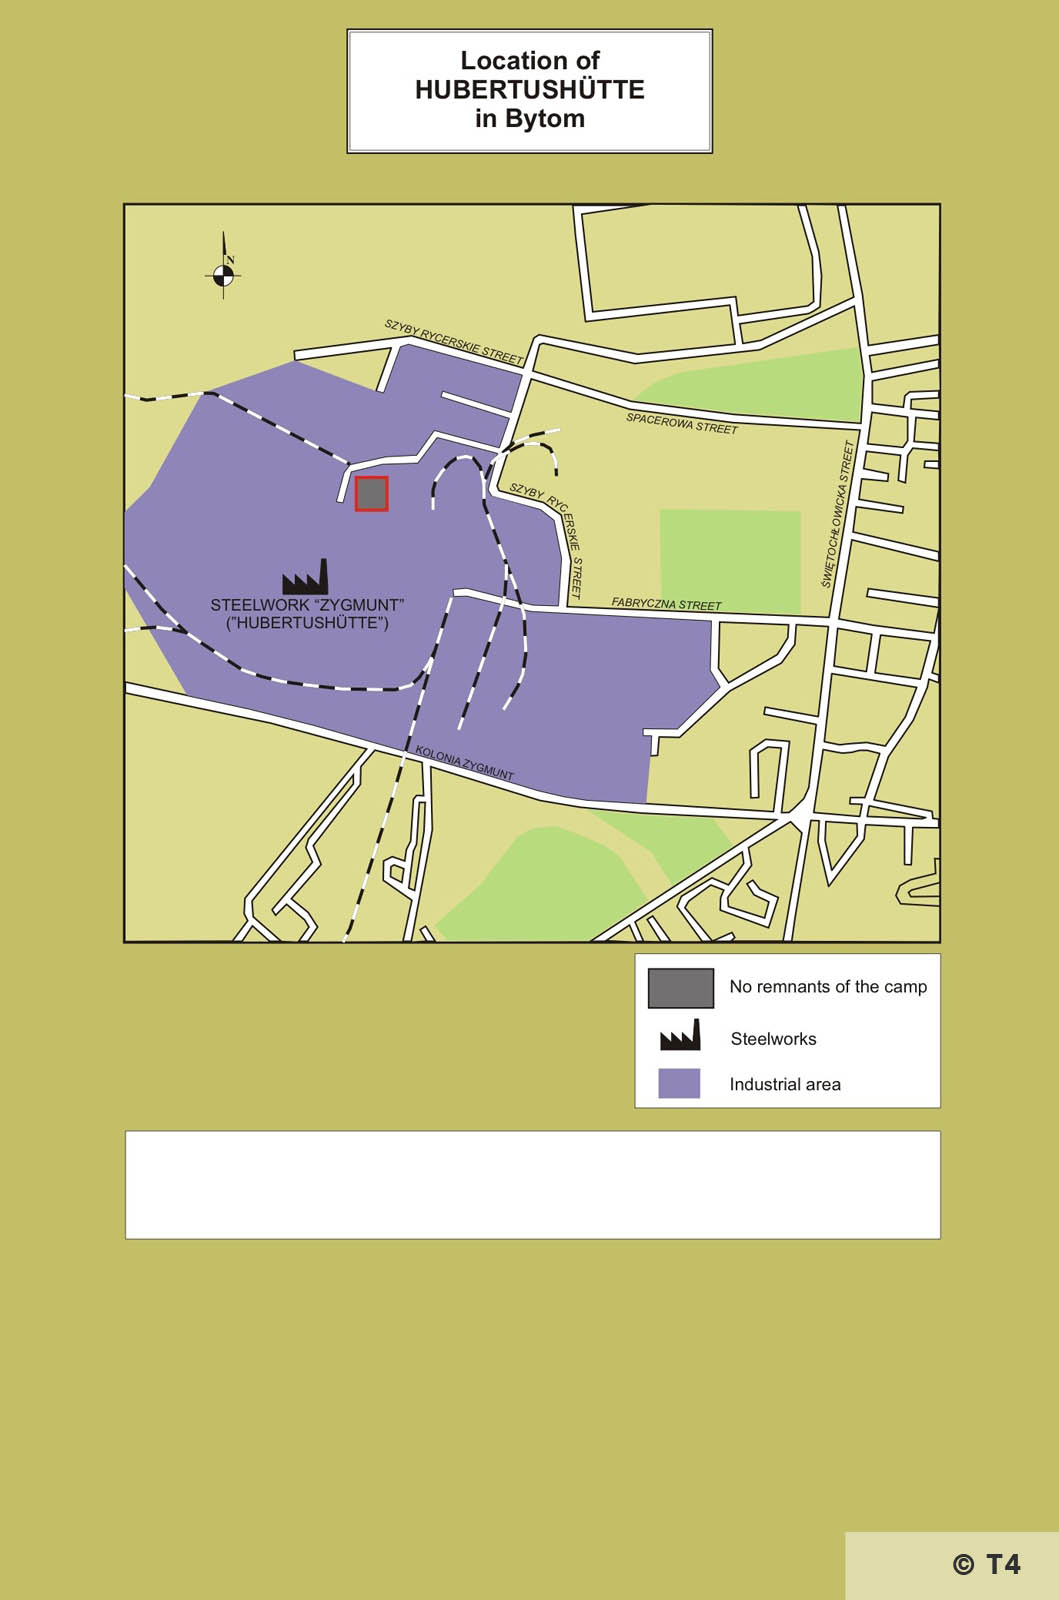 Map of location of Hubertushütte in Bytom. T4